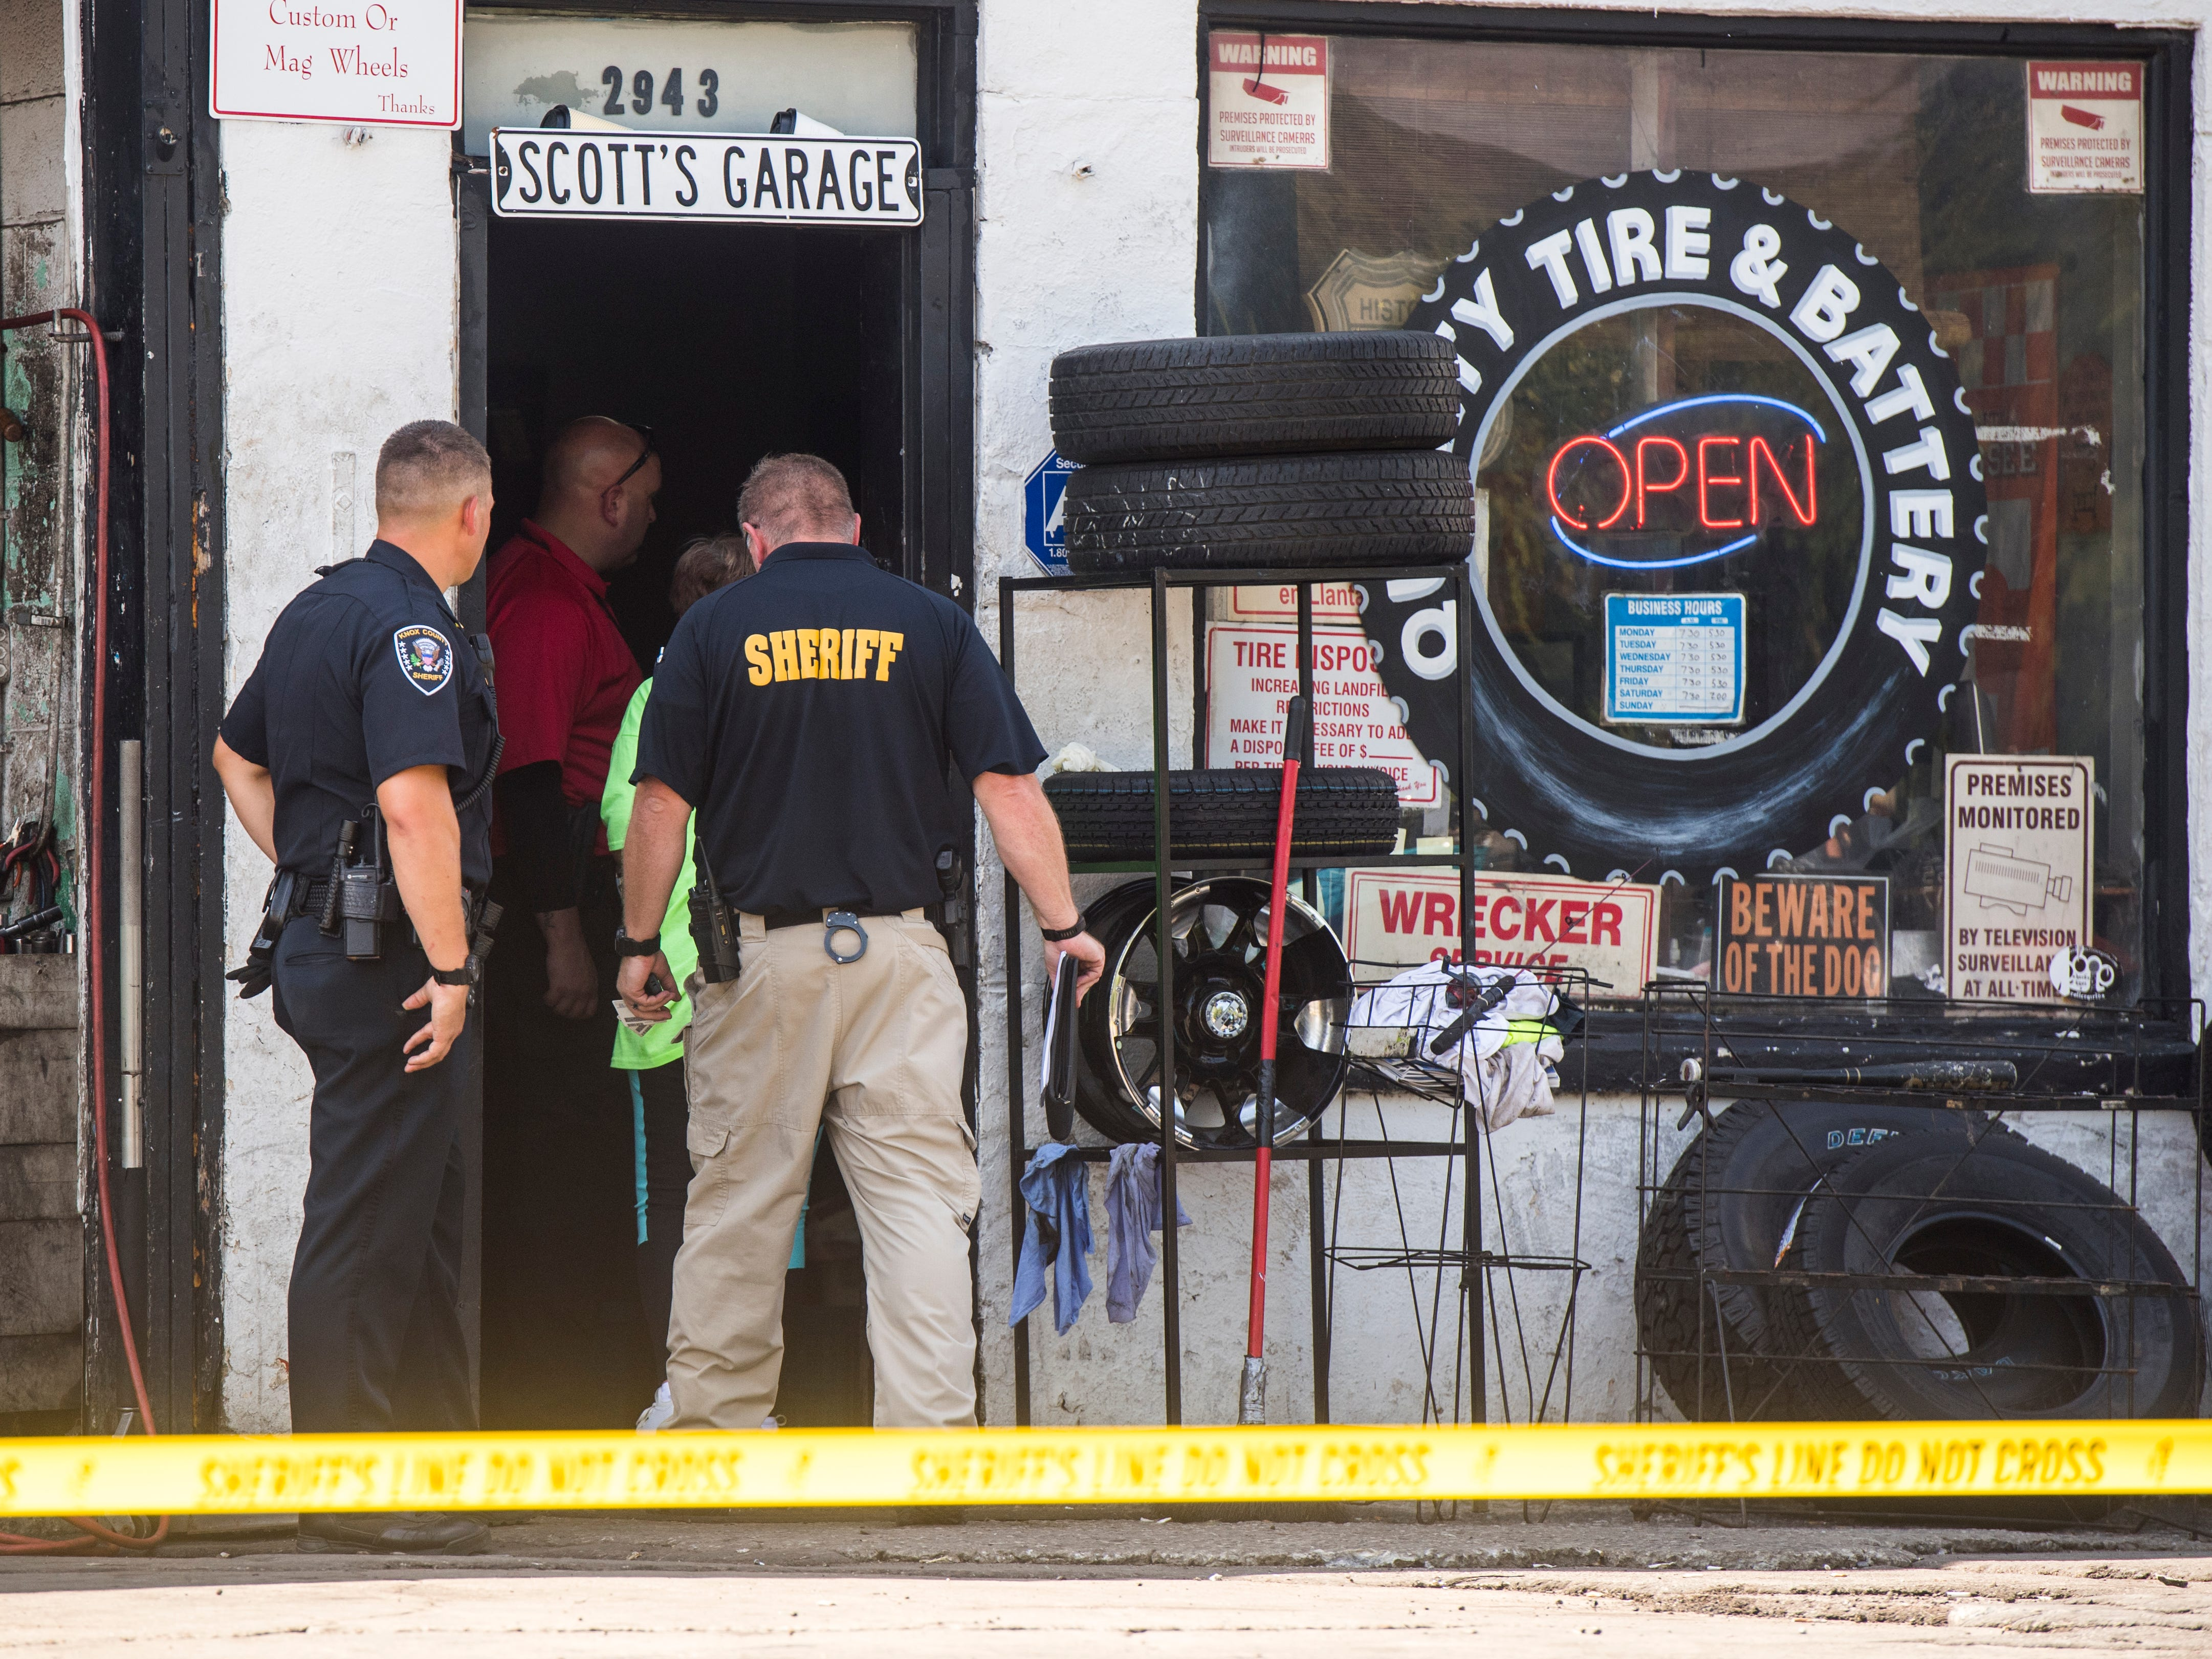 The Knox County Sheriff's Office are searching the Quality Tire & Batteries shop at 2943 N. Central in Knoxville on Wednesday, September 12, 2018, after a three month long investigation into EBT fraud and purchasing stolen merchandise.